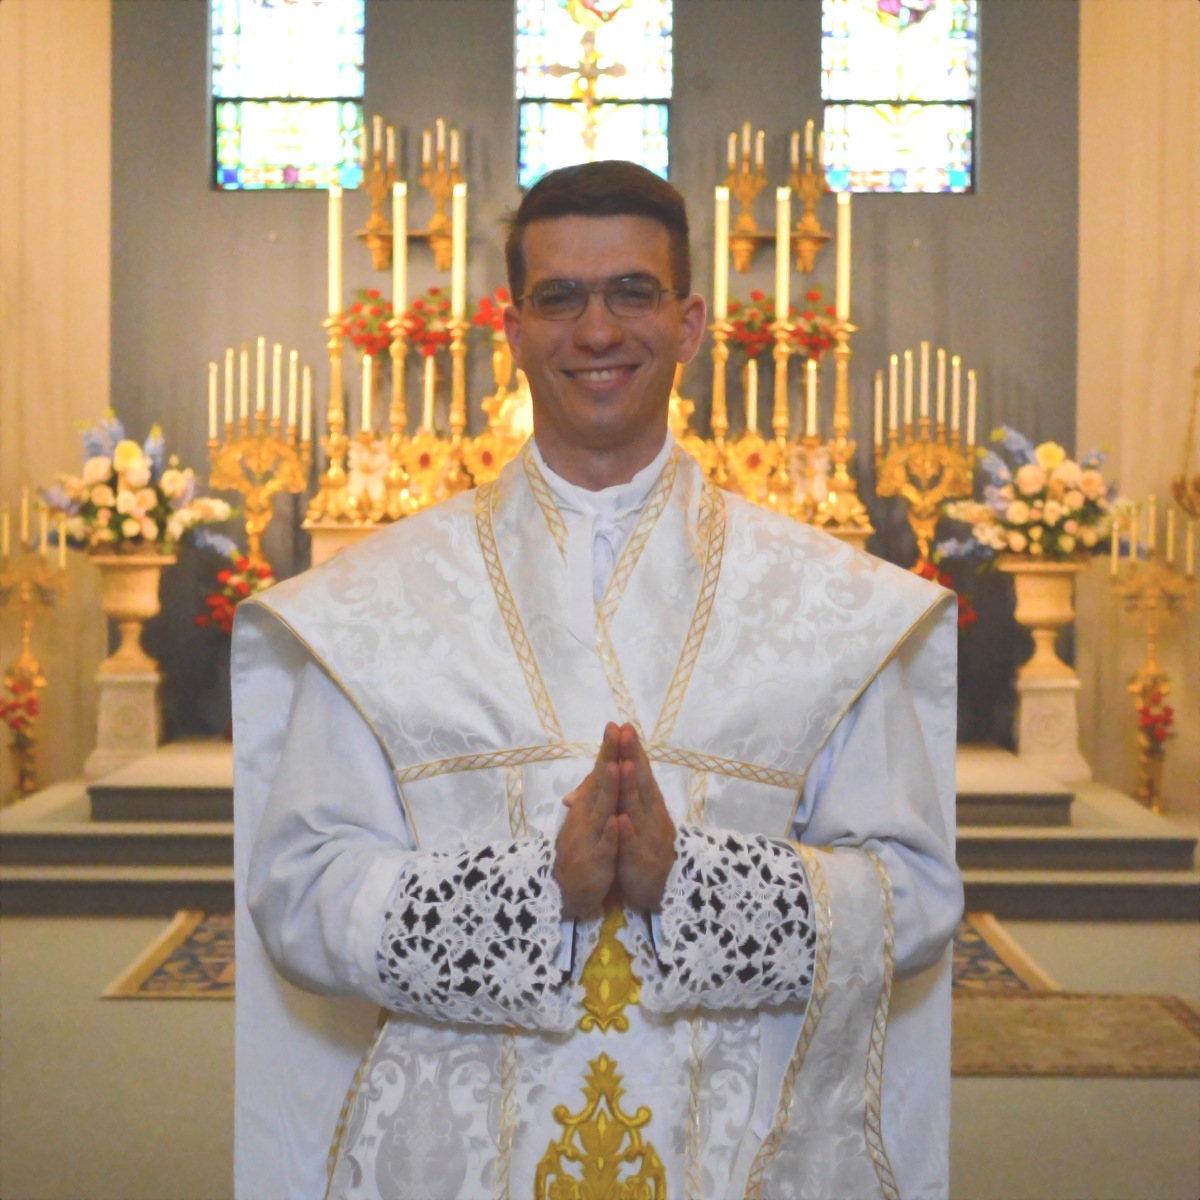 Father Philip Eldracher